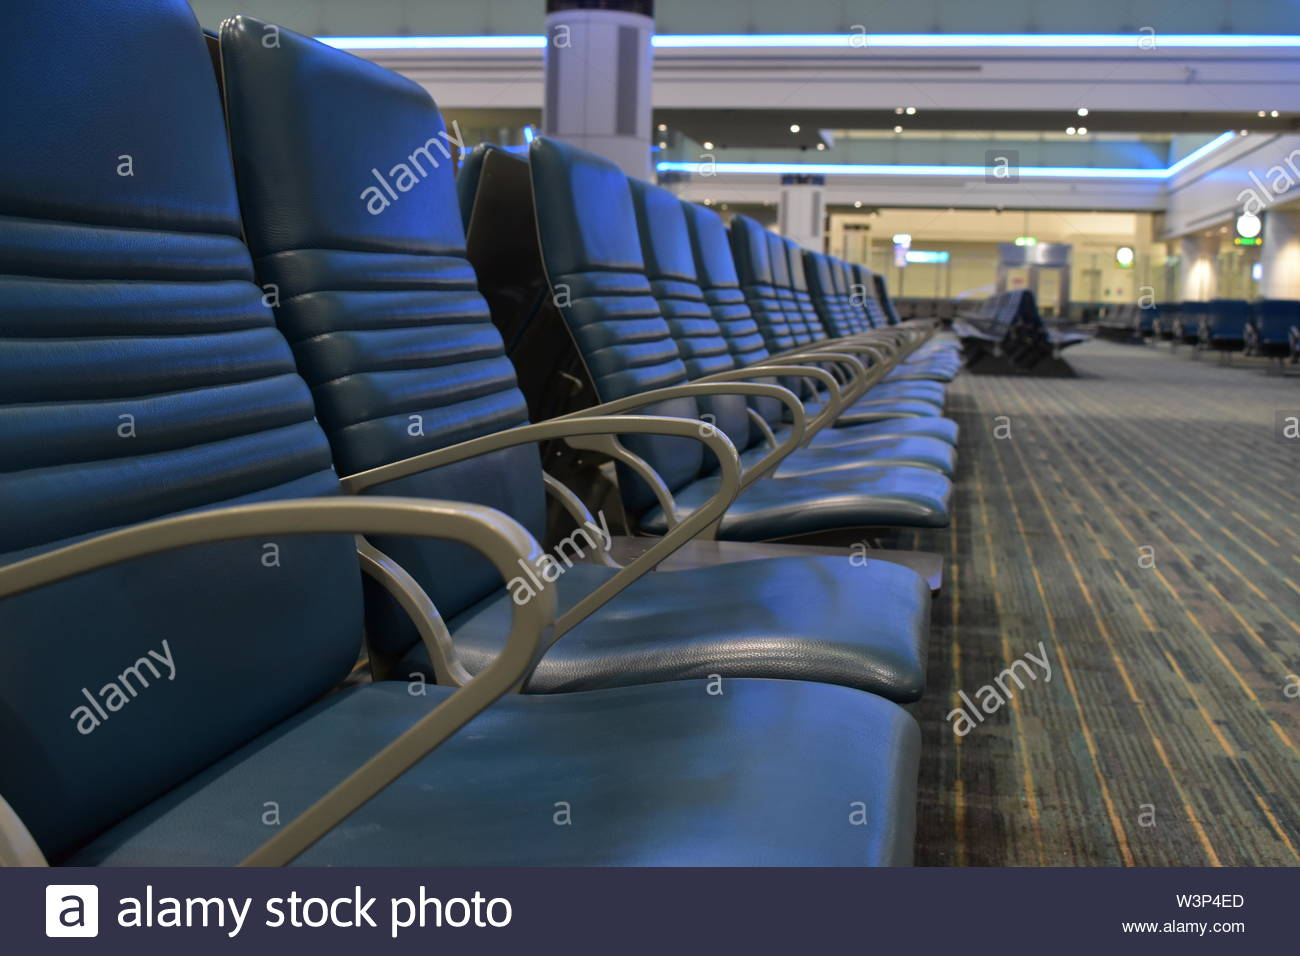 Picture of a large empty waiting room with rows of comfortable seats, decrease of activity, crisis background, concept. - Stock Image